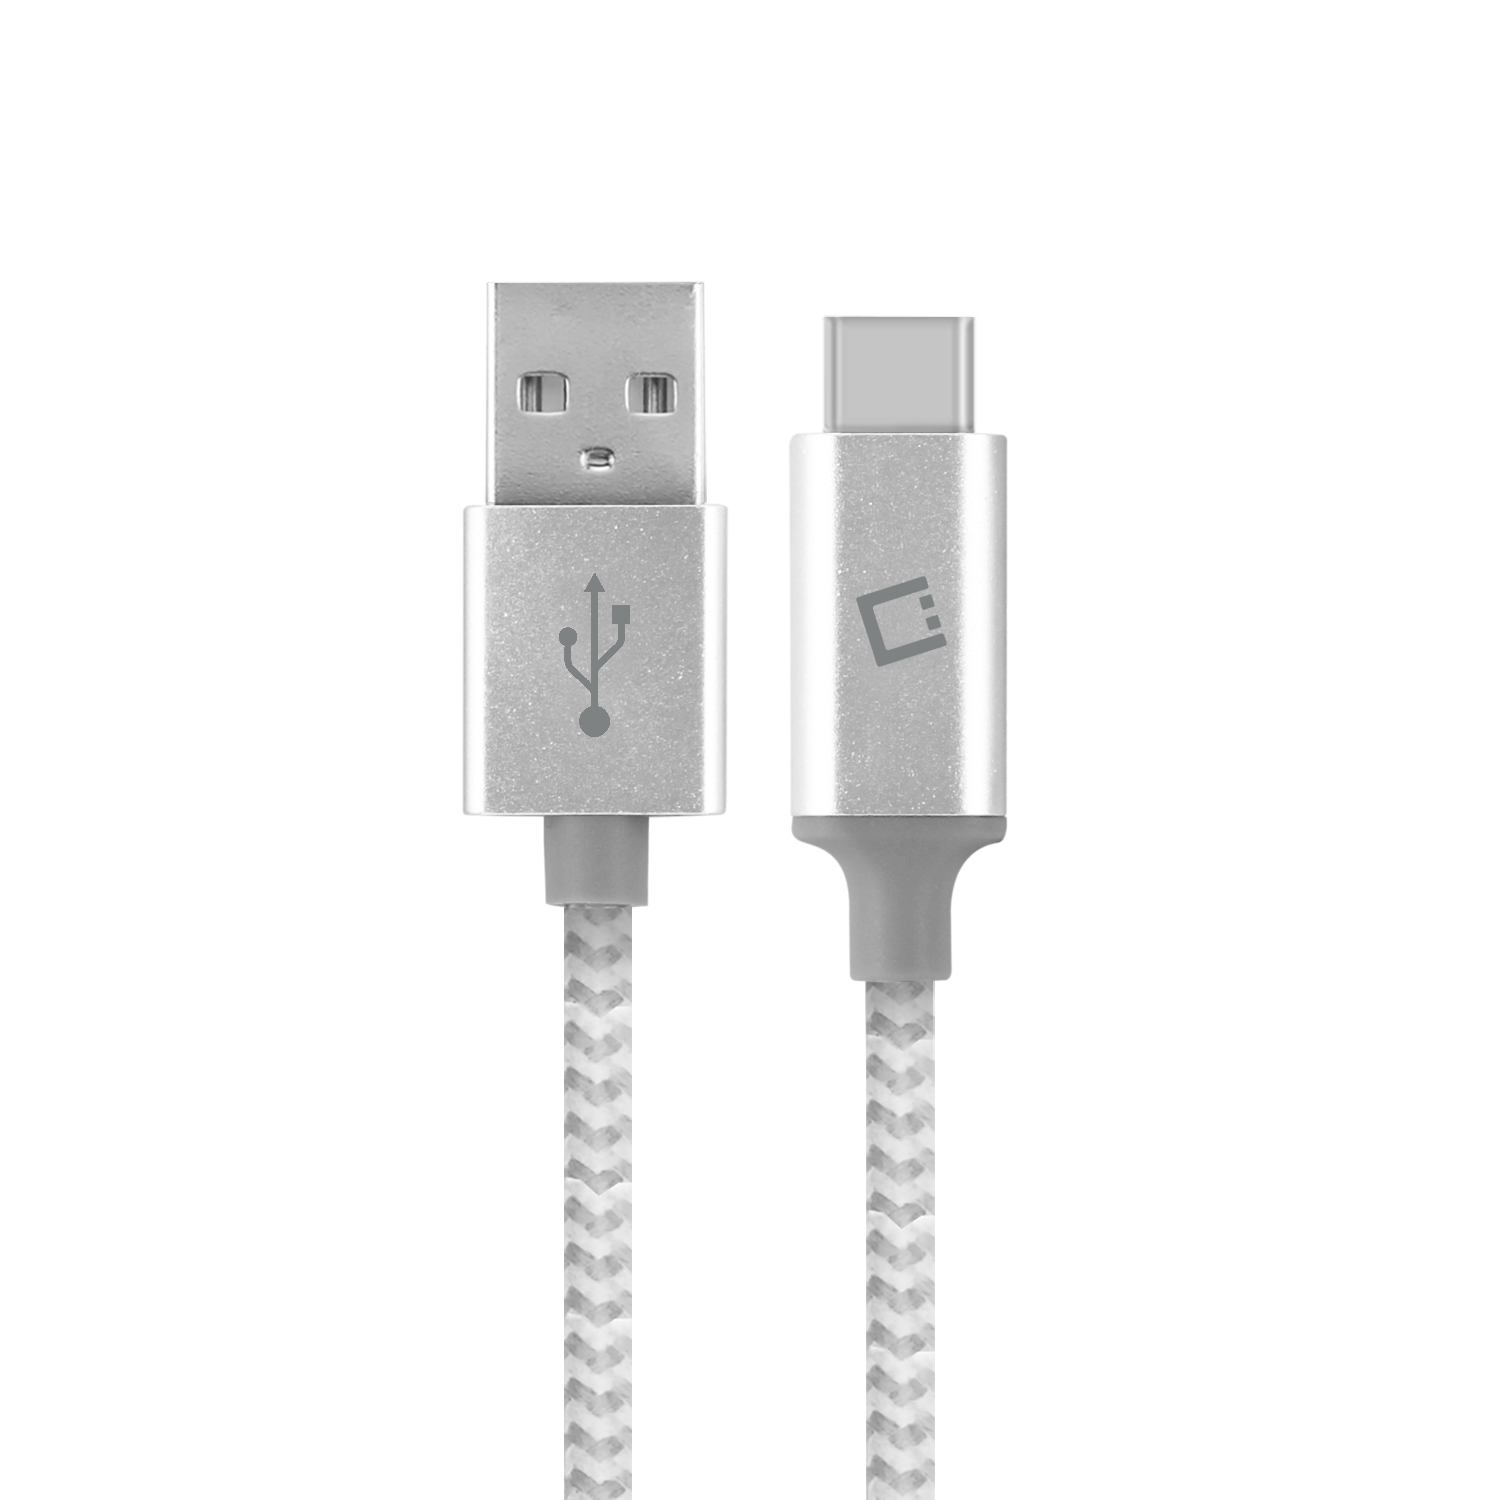 Sony Xperia XZ1 USB Type-C To Type-A Braided Data Power Cable White 4ft Round